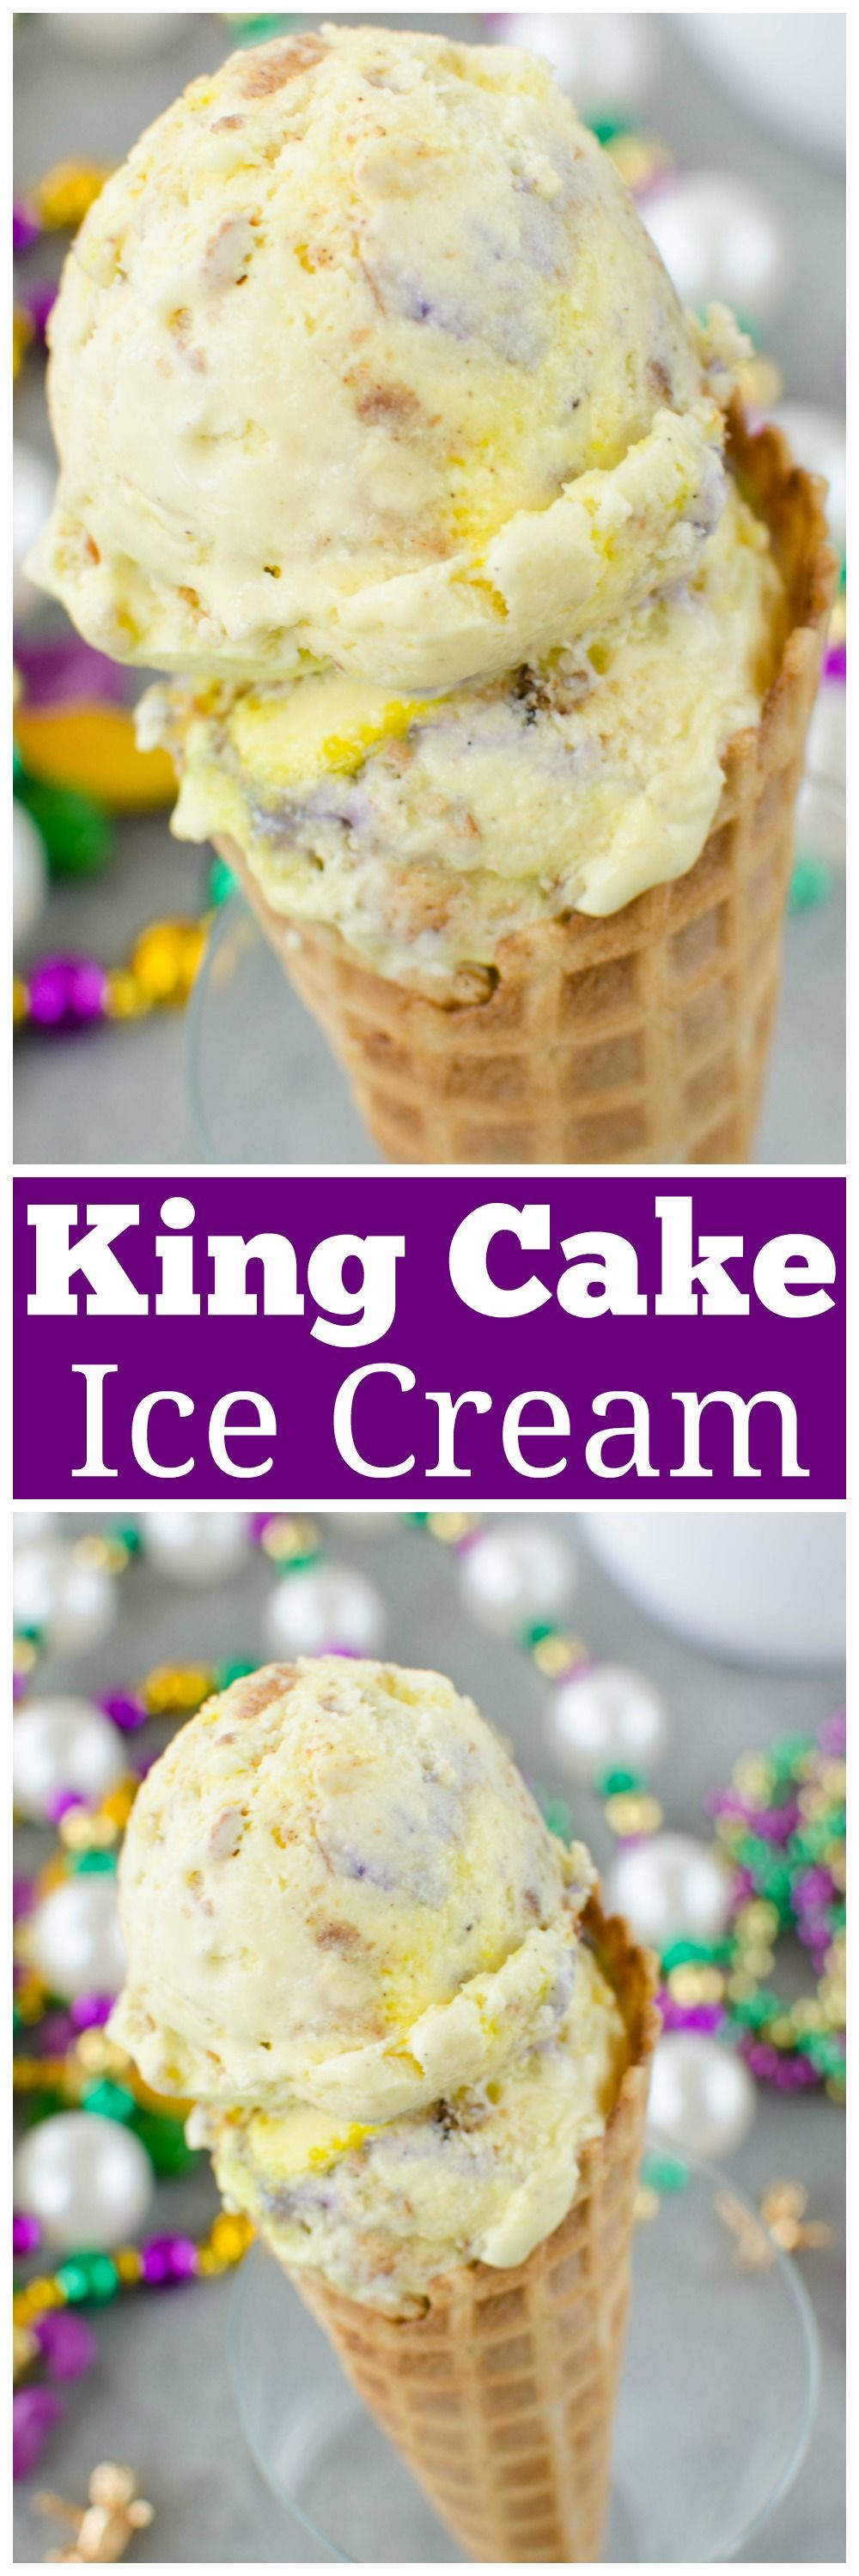 King Cake Ice Cream - it's Mardi Gras,  y'all! Cream cheese ice cream with king cake pieces and sprinkles mixed in.